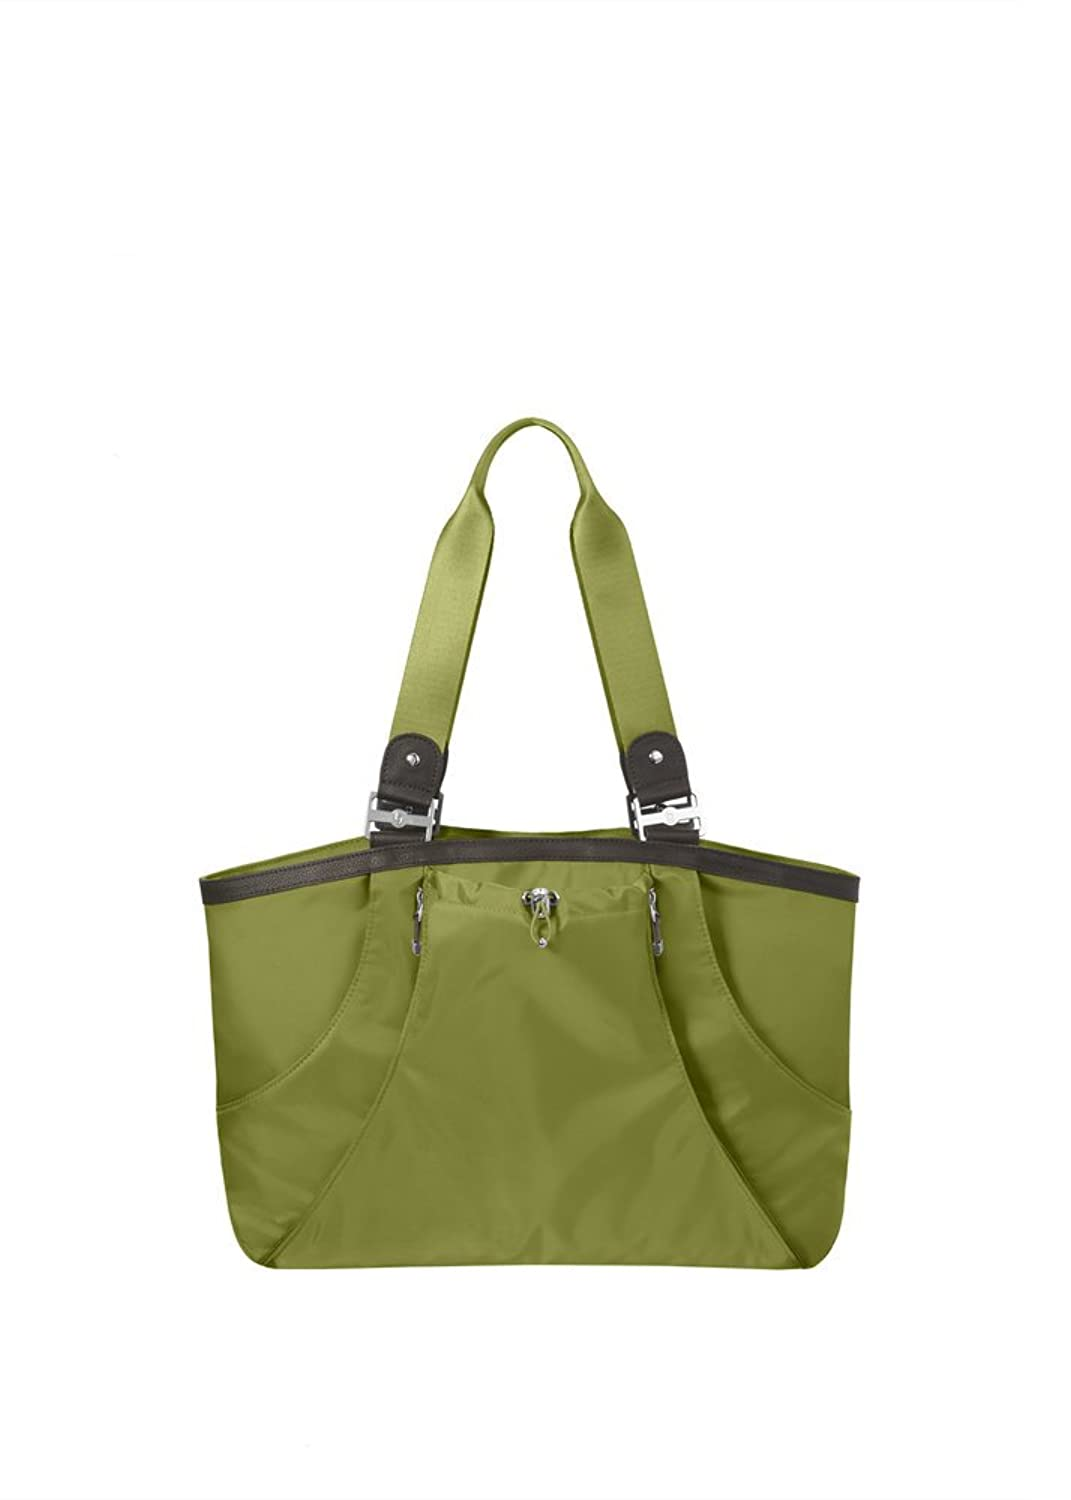 BG by Baggallini All In One Tote and Yoga Bag